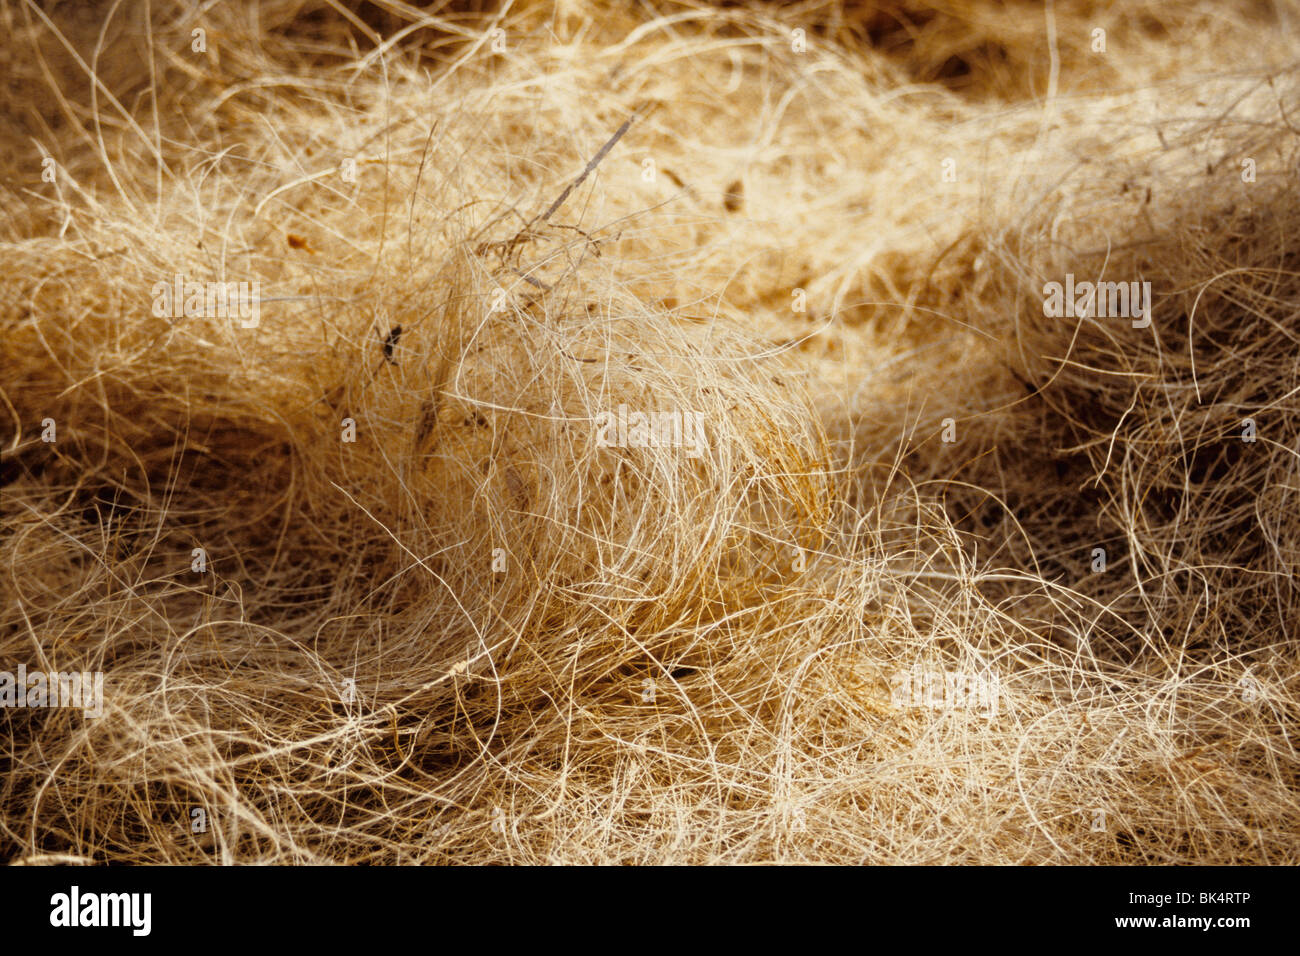 Detail of coco fiber called 'coir' is used for making rope - Stock Image